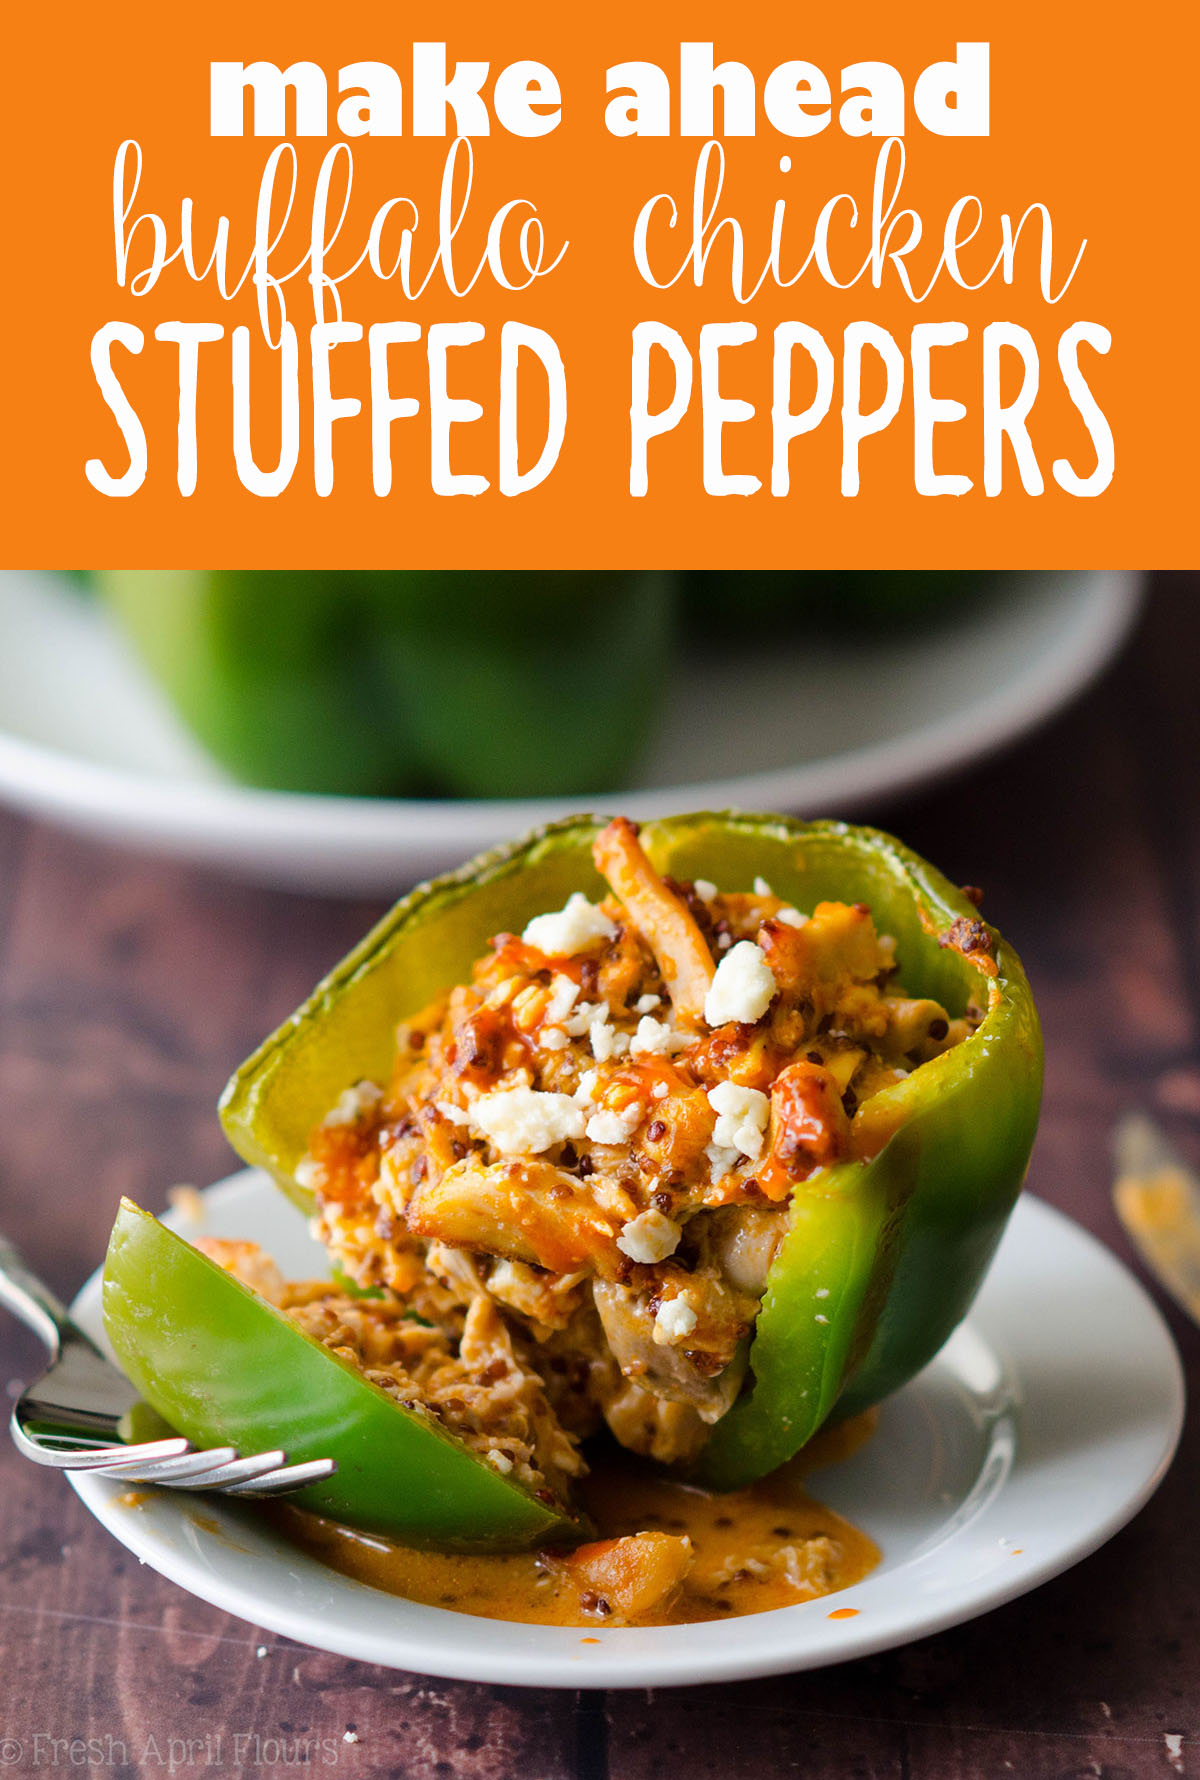 Buffalo Chicken Stuffed Peppers: An easy, make-ahead weeknight meal that makes great leftovers and can be easily doubled to feed a crowd or larger family.